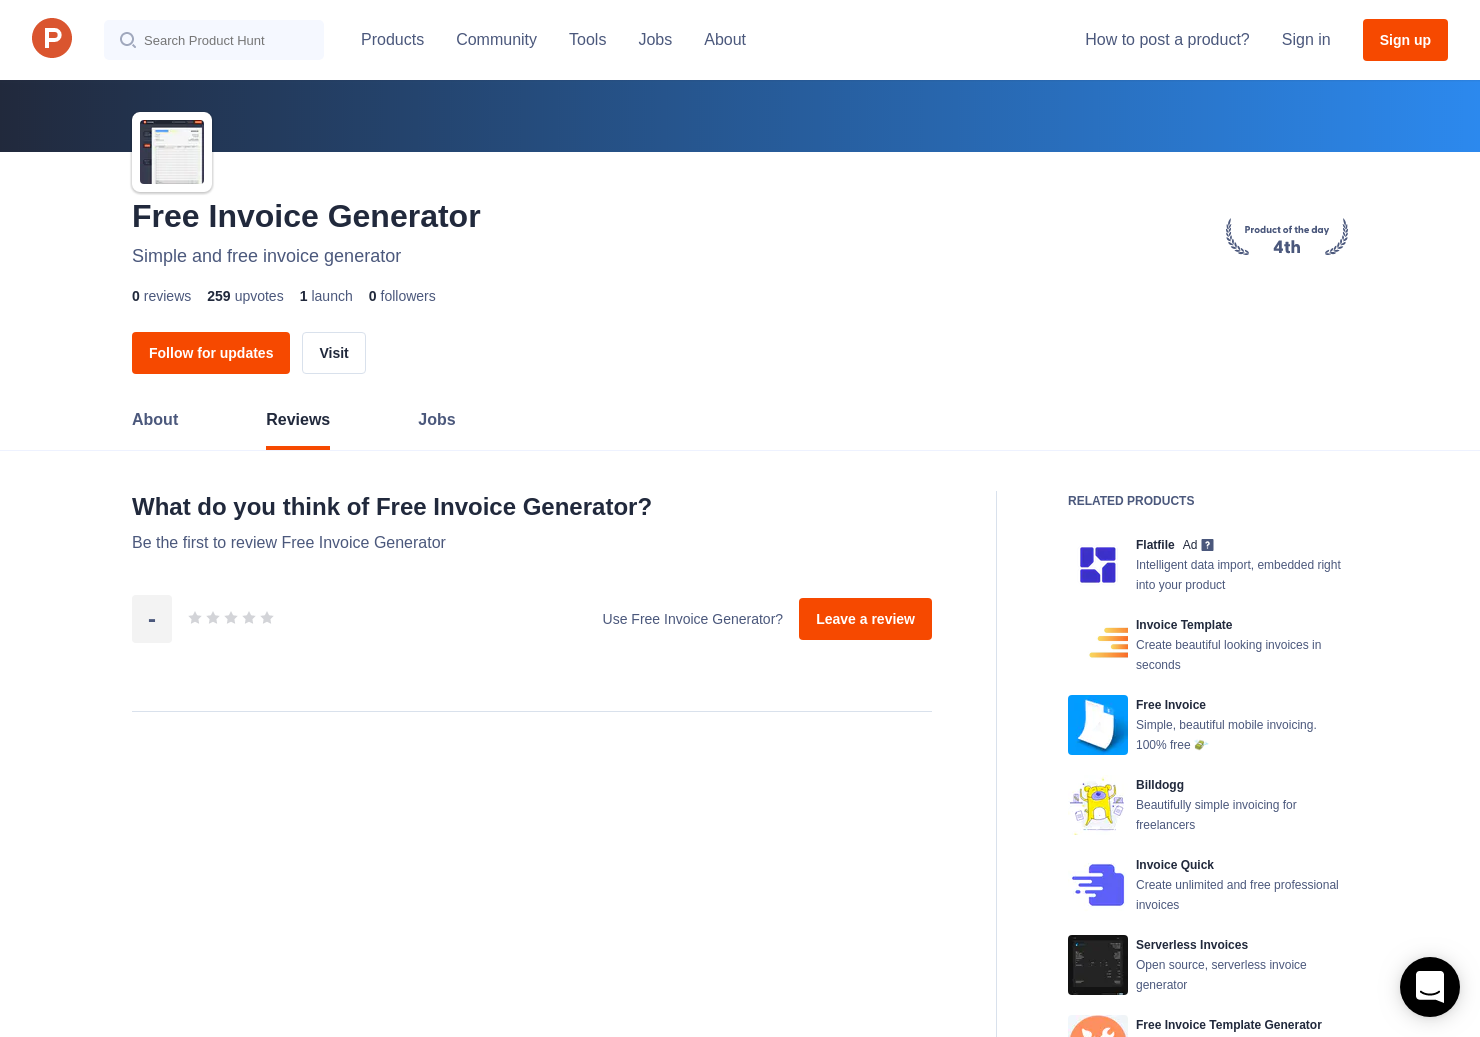 Free Invoice Generator Reviews - Pros, Cons and Rating